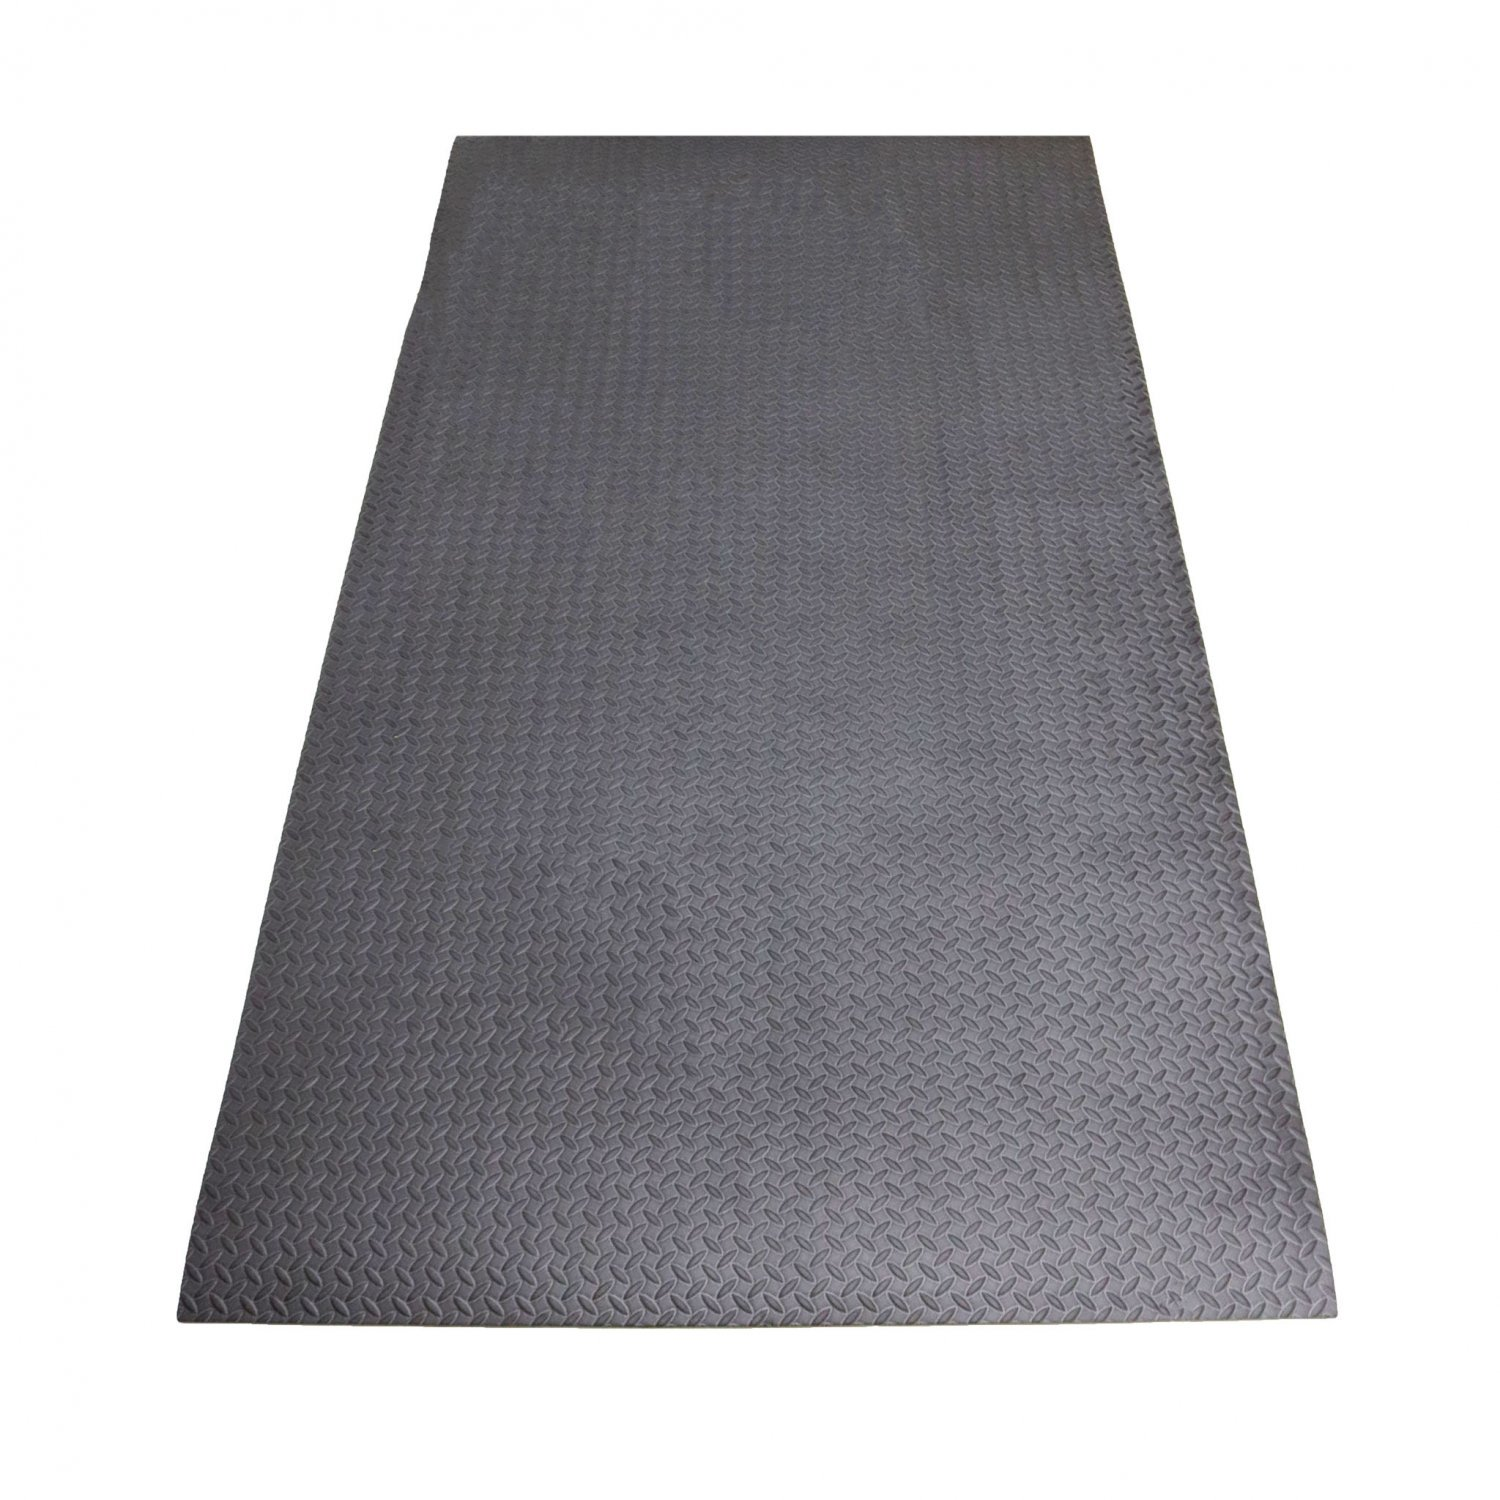 Large multi purpose safety eva floor mat play garage gym matting